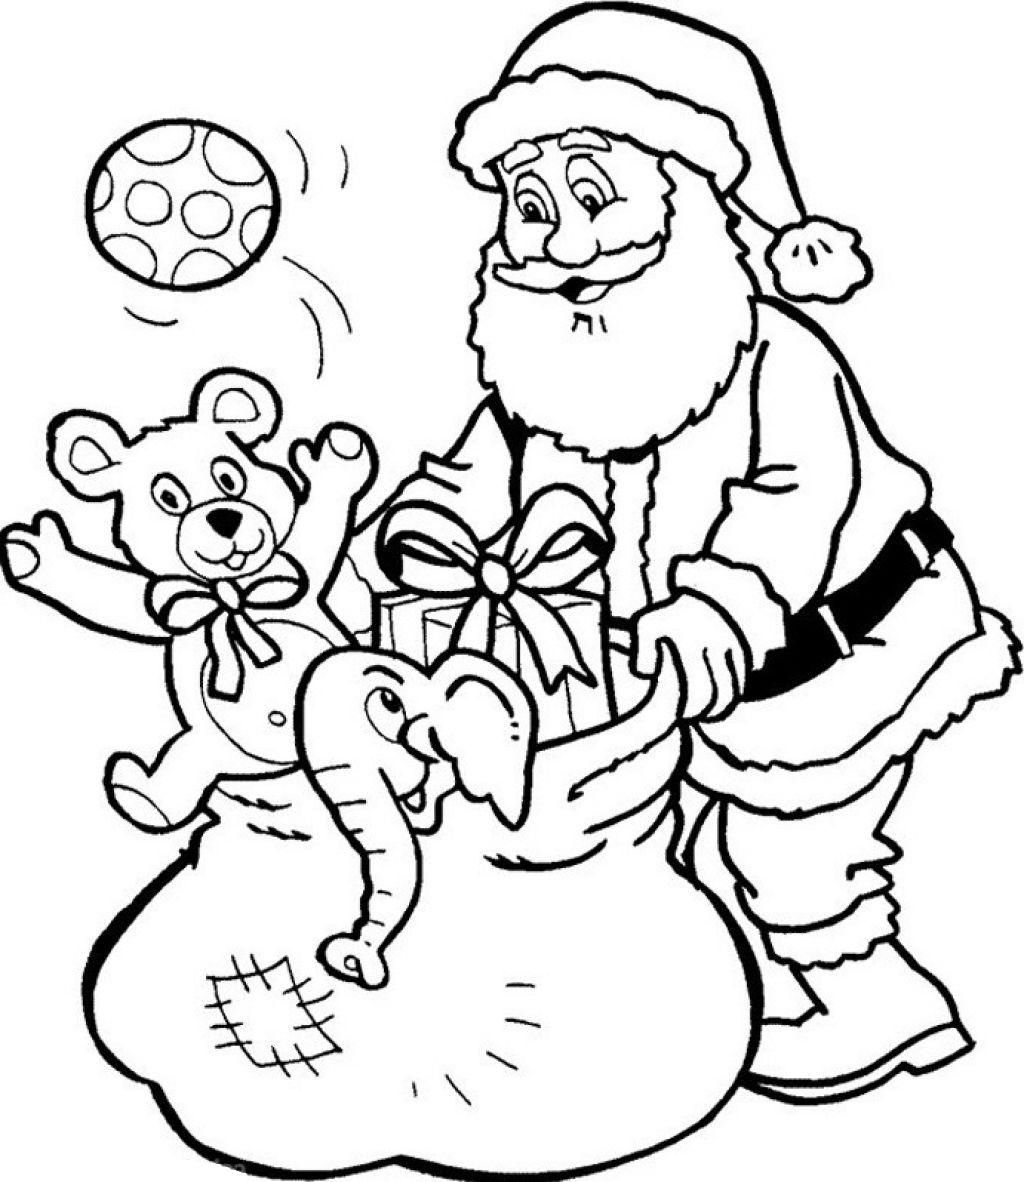 Santa Claus Coloring Pages Christmas Coloring Pages Santa